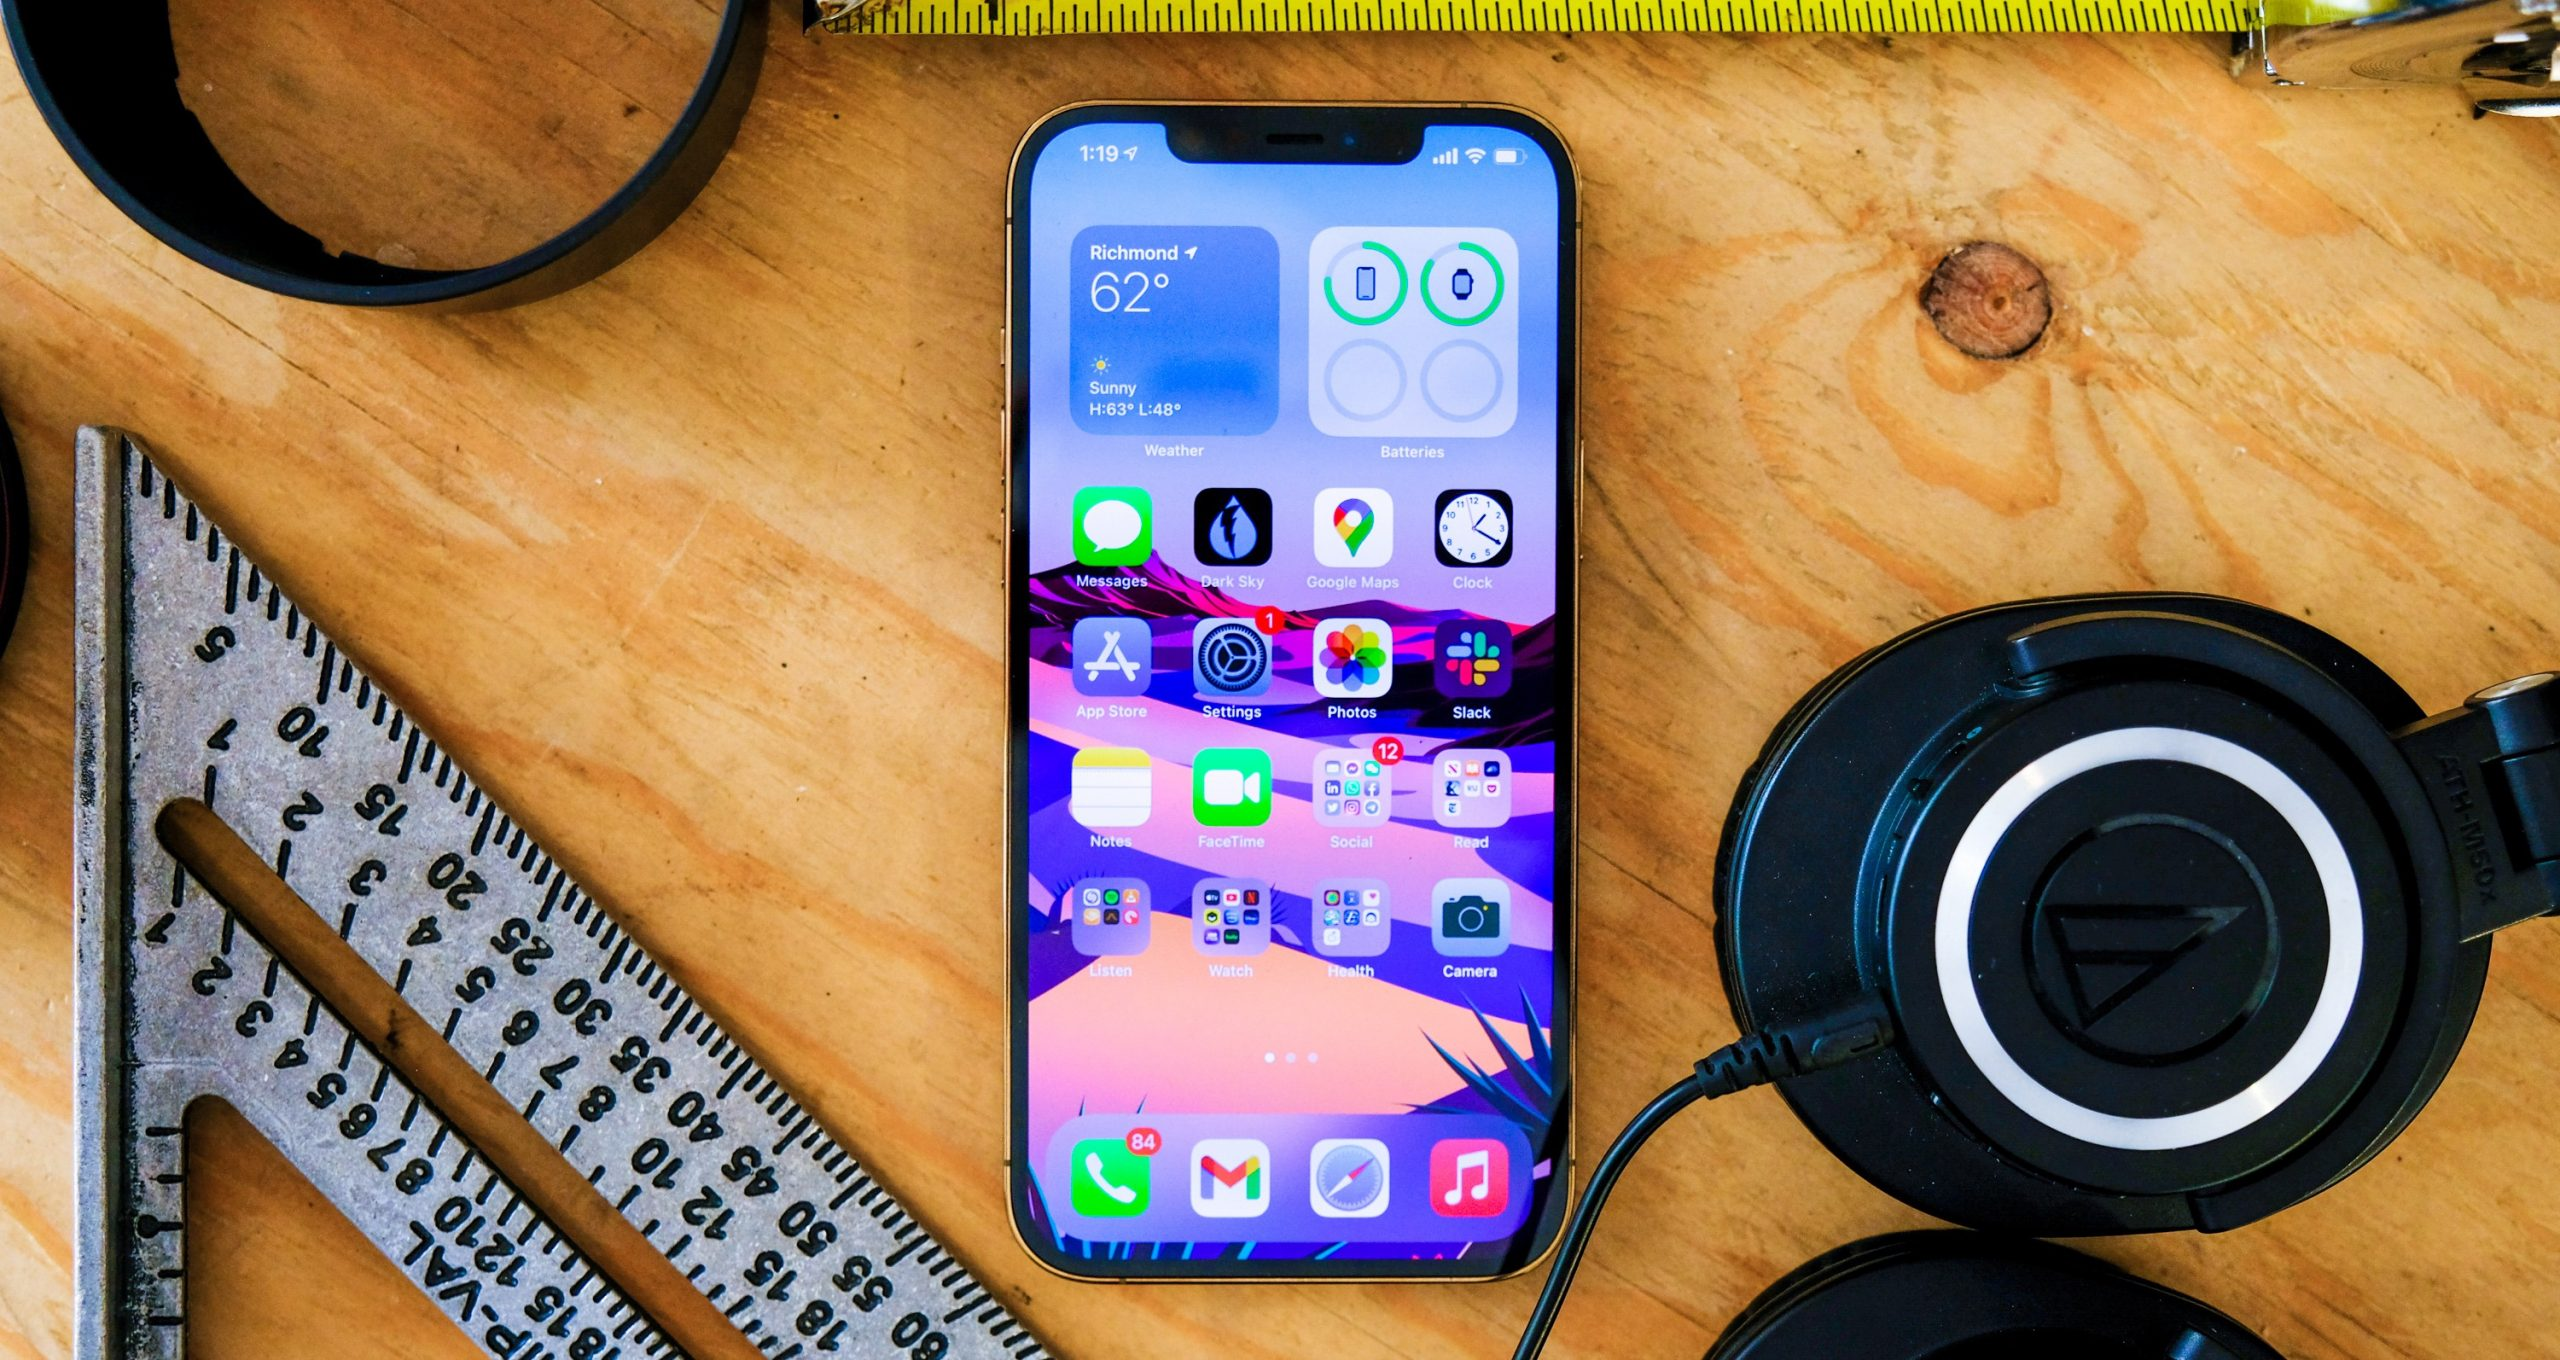 iPhone 12 Pro Max , iPhone 12 Pro Max Cam ,iPhone 12 Pro Max Camera test,iPhone 12 Pro Max Screen Repair, iPhone 12 Pro Max Camera, iPhone 12 Pro Max Unboxing, iPhone 12 Pro Max Hands-on